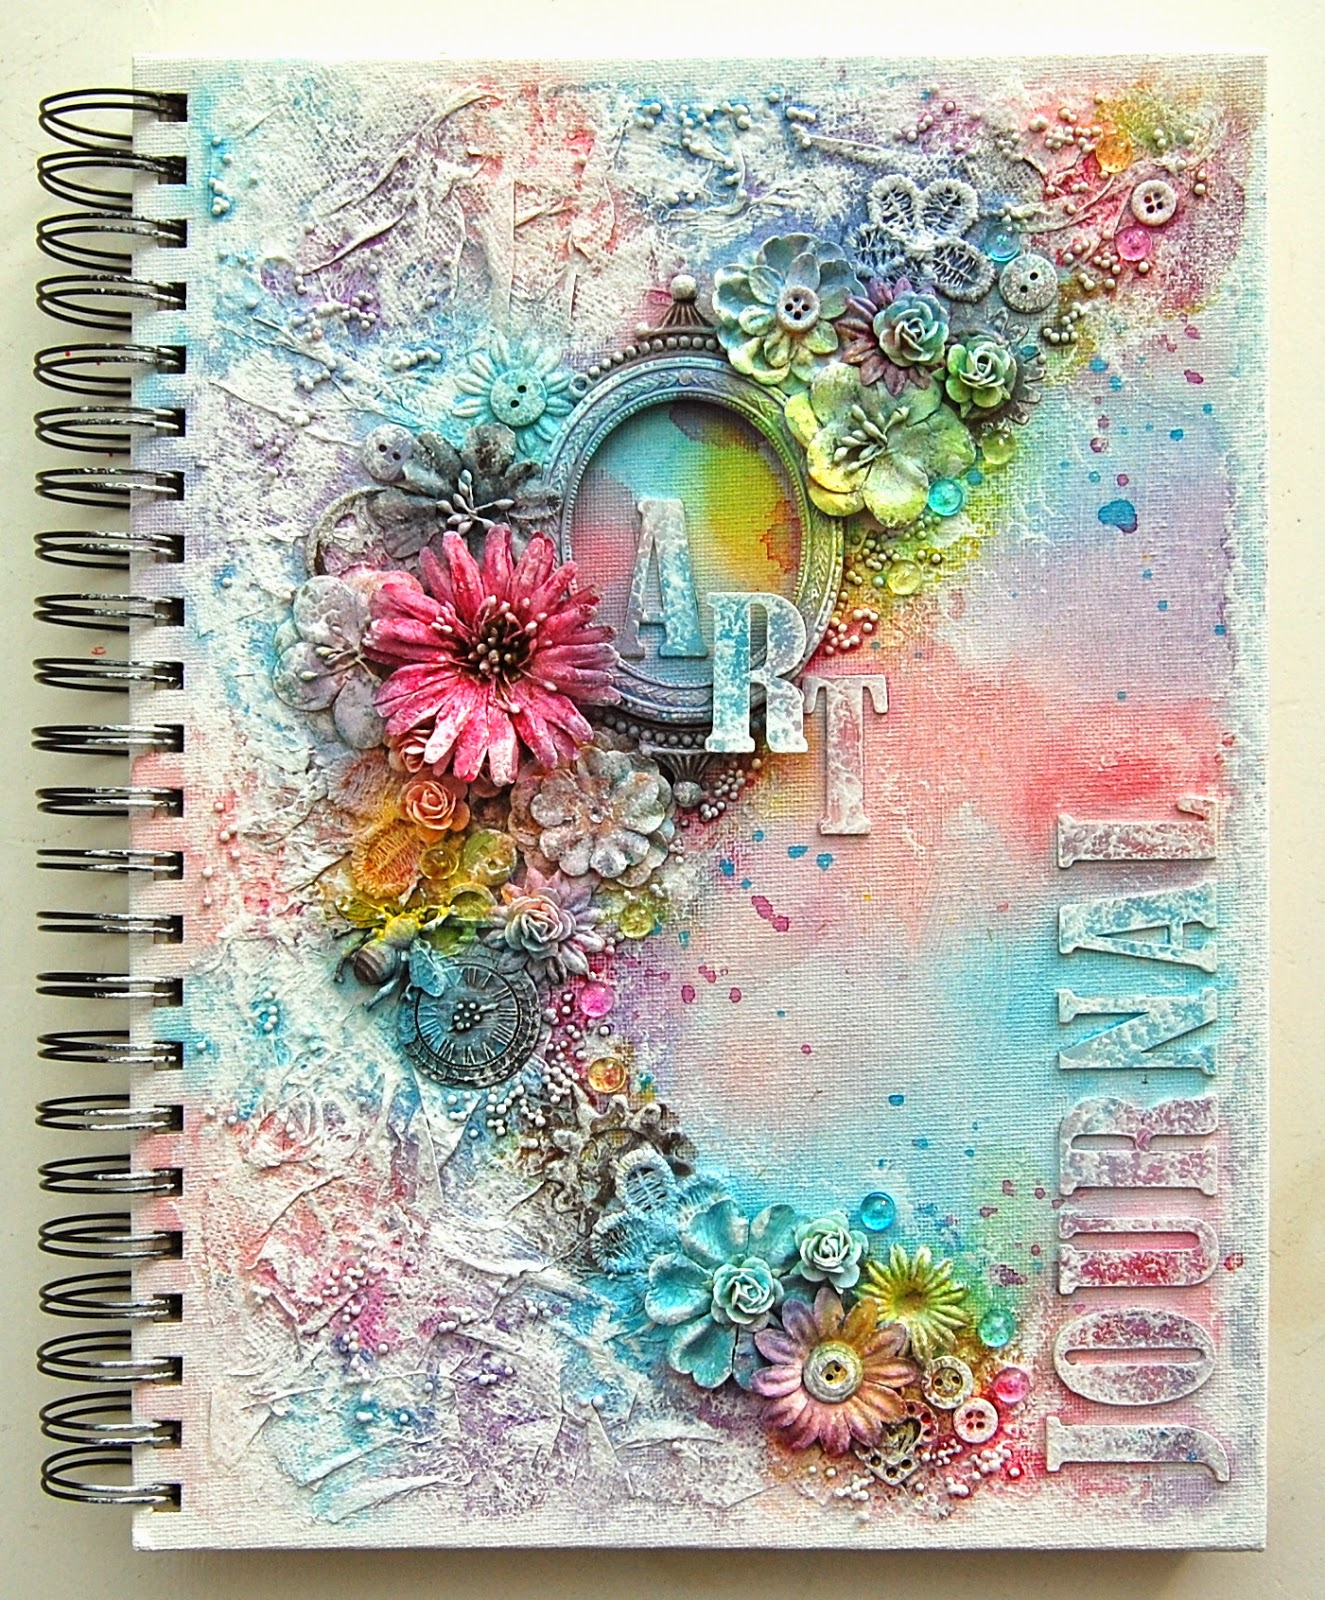 How To Make A Book Cover In Paint : Ingrid s place art journal shimmerz